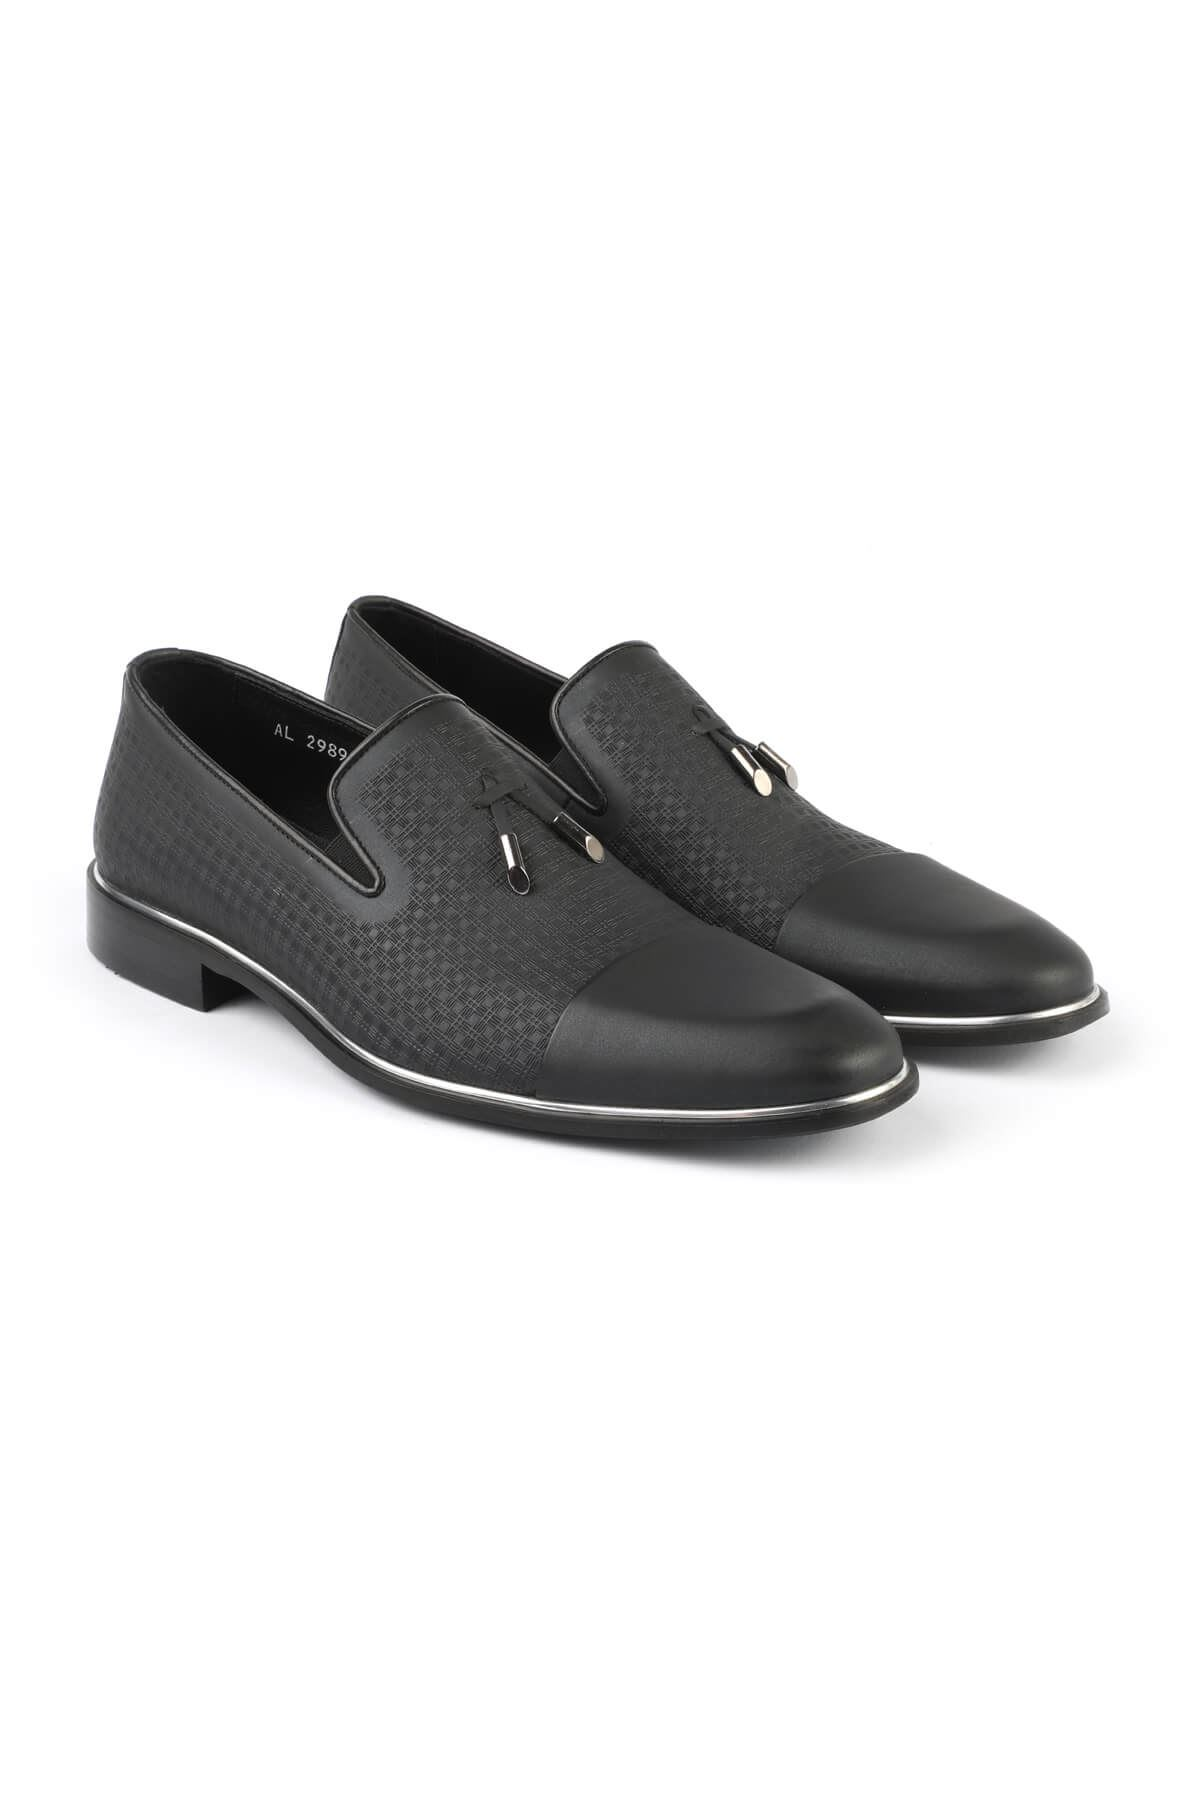 Libero 2989 Black Classic Shoes